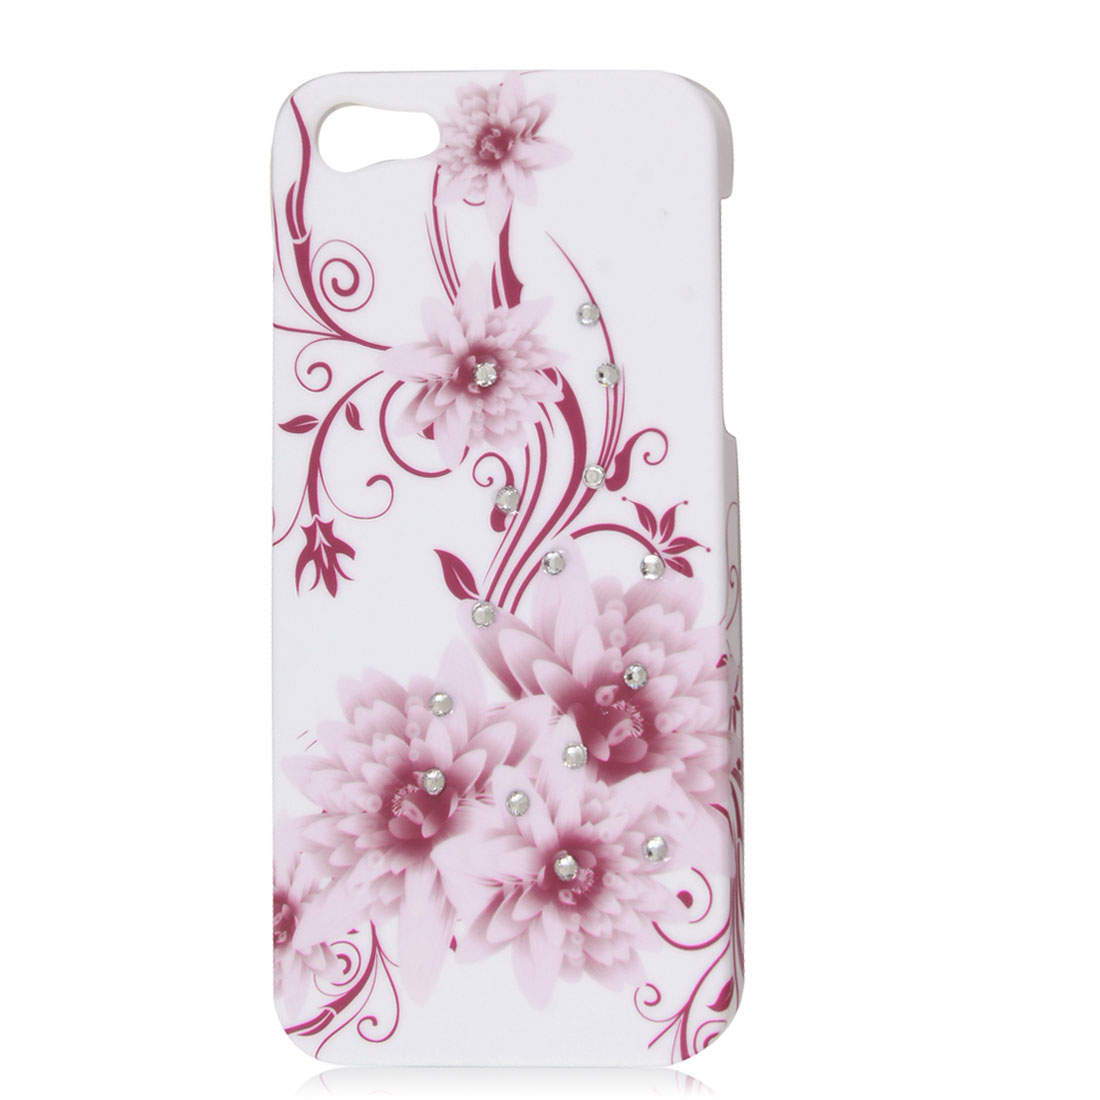 Glitter Rhinestone Pink Flower Back Case Cover Hard Shell White for iPhone 5 5G